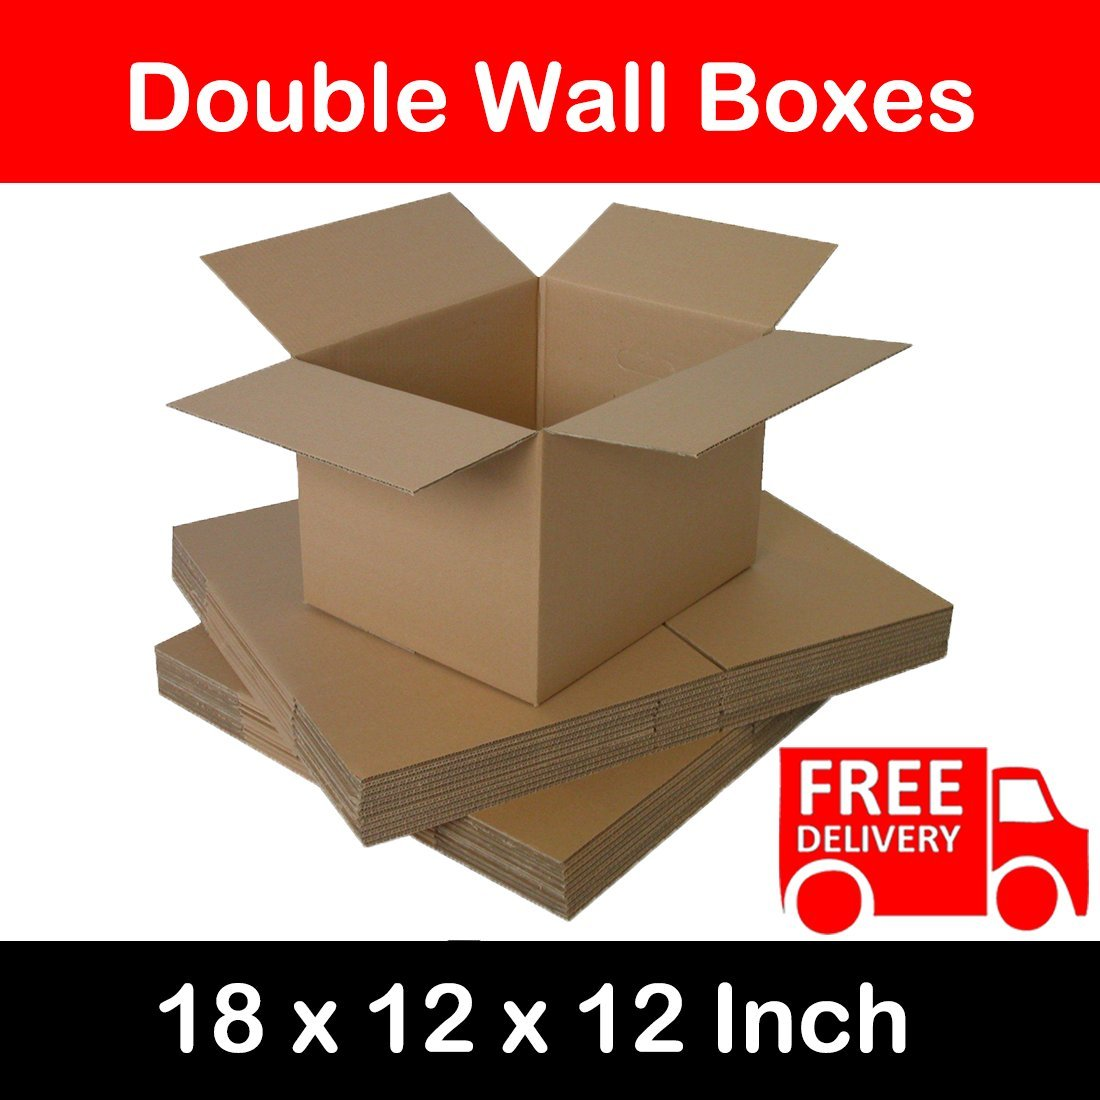 Double Wall Strong Flat-packed 457x305x305mm Corrugated Removal Storage Boxes 18x12x12 Inch (1) Elite-Packaging